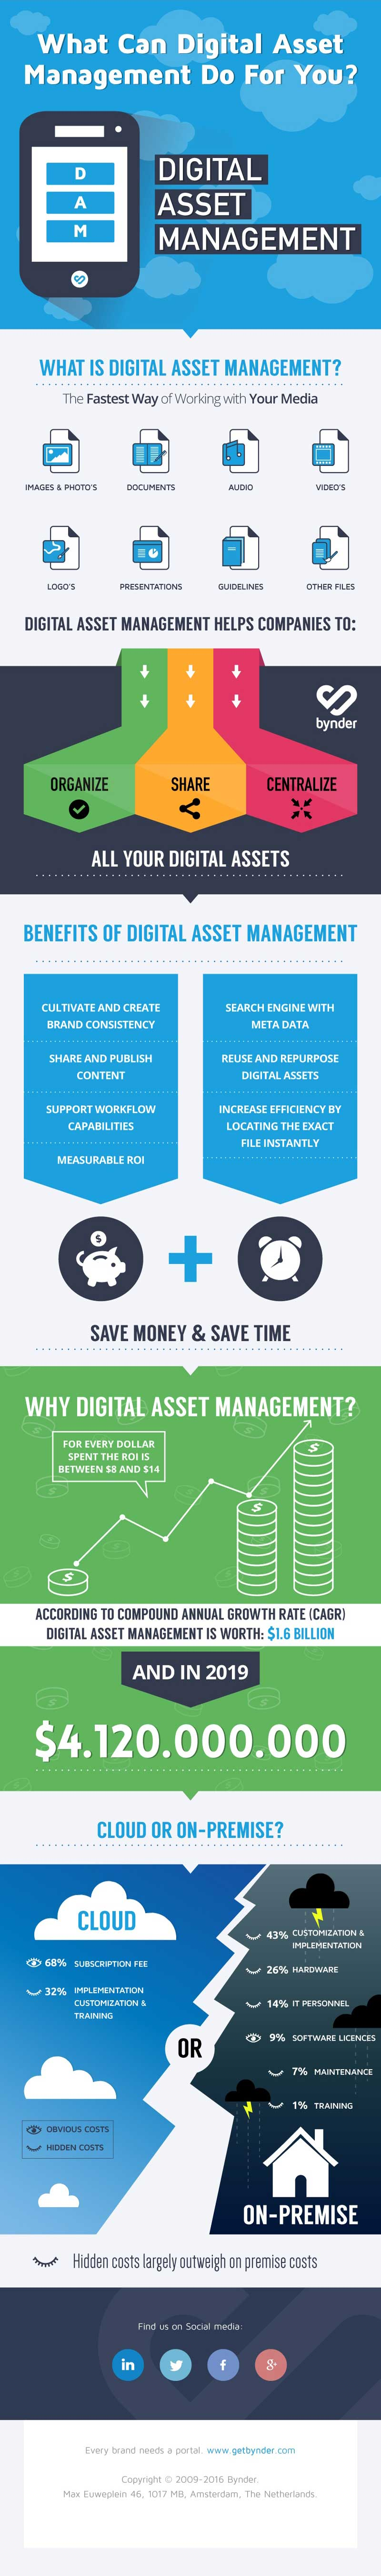 What Can a Digital Asset Management Software Do for You?